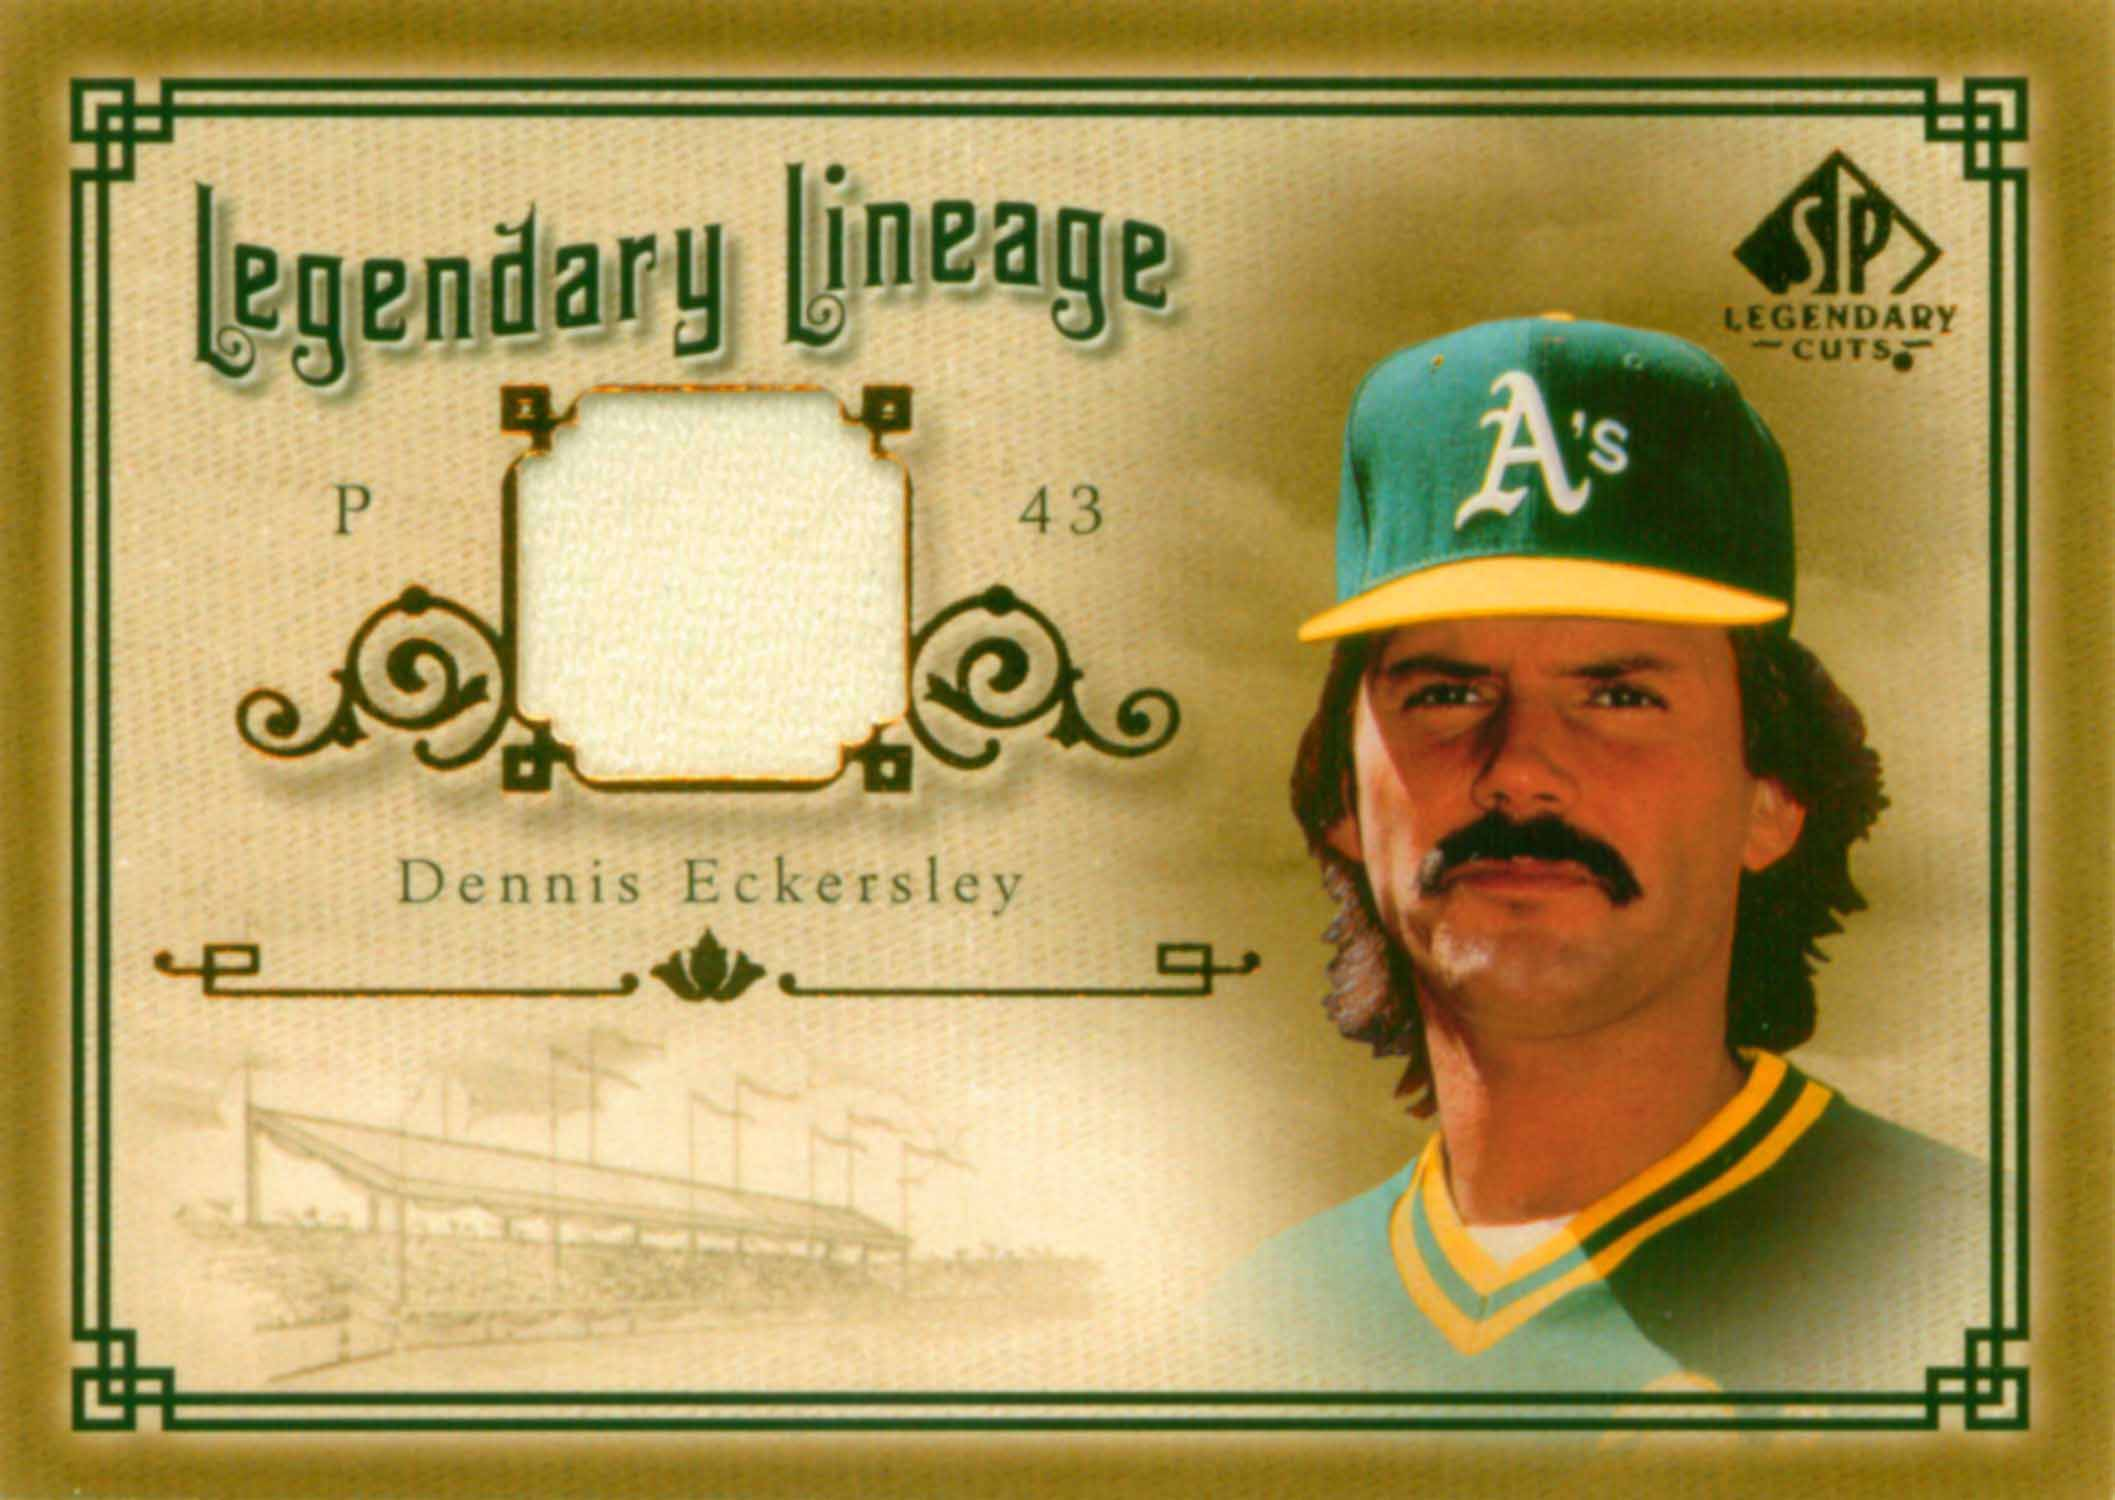 2005 SP Legendary Cuts Legendary Lineage Material Jersey